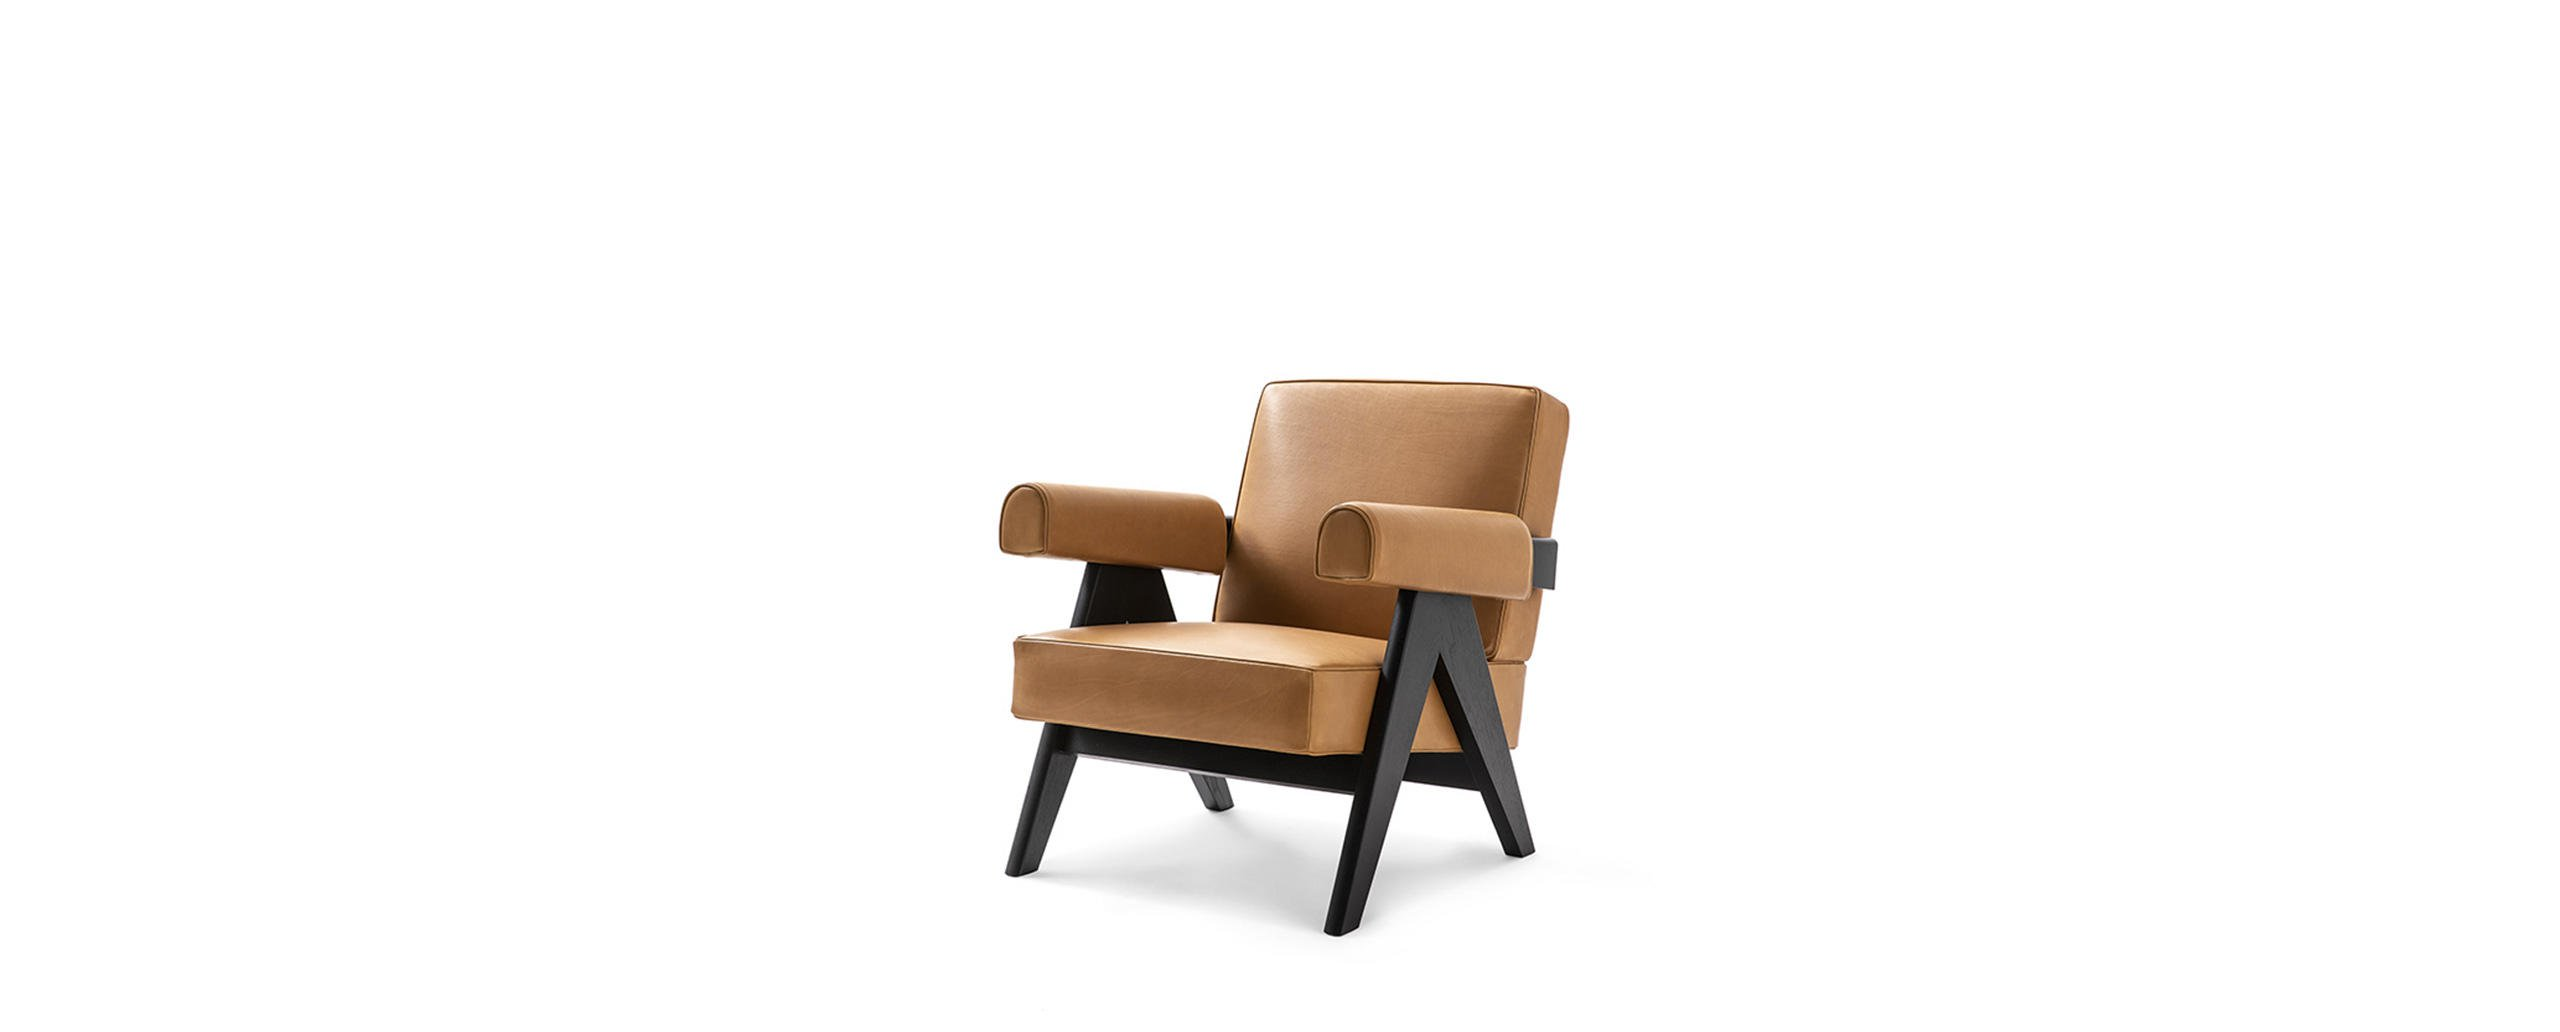 8_cassina_capitol_complex_armchair_hommage_o_pierre_jeanneret_cassina_rd